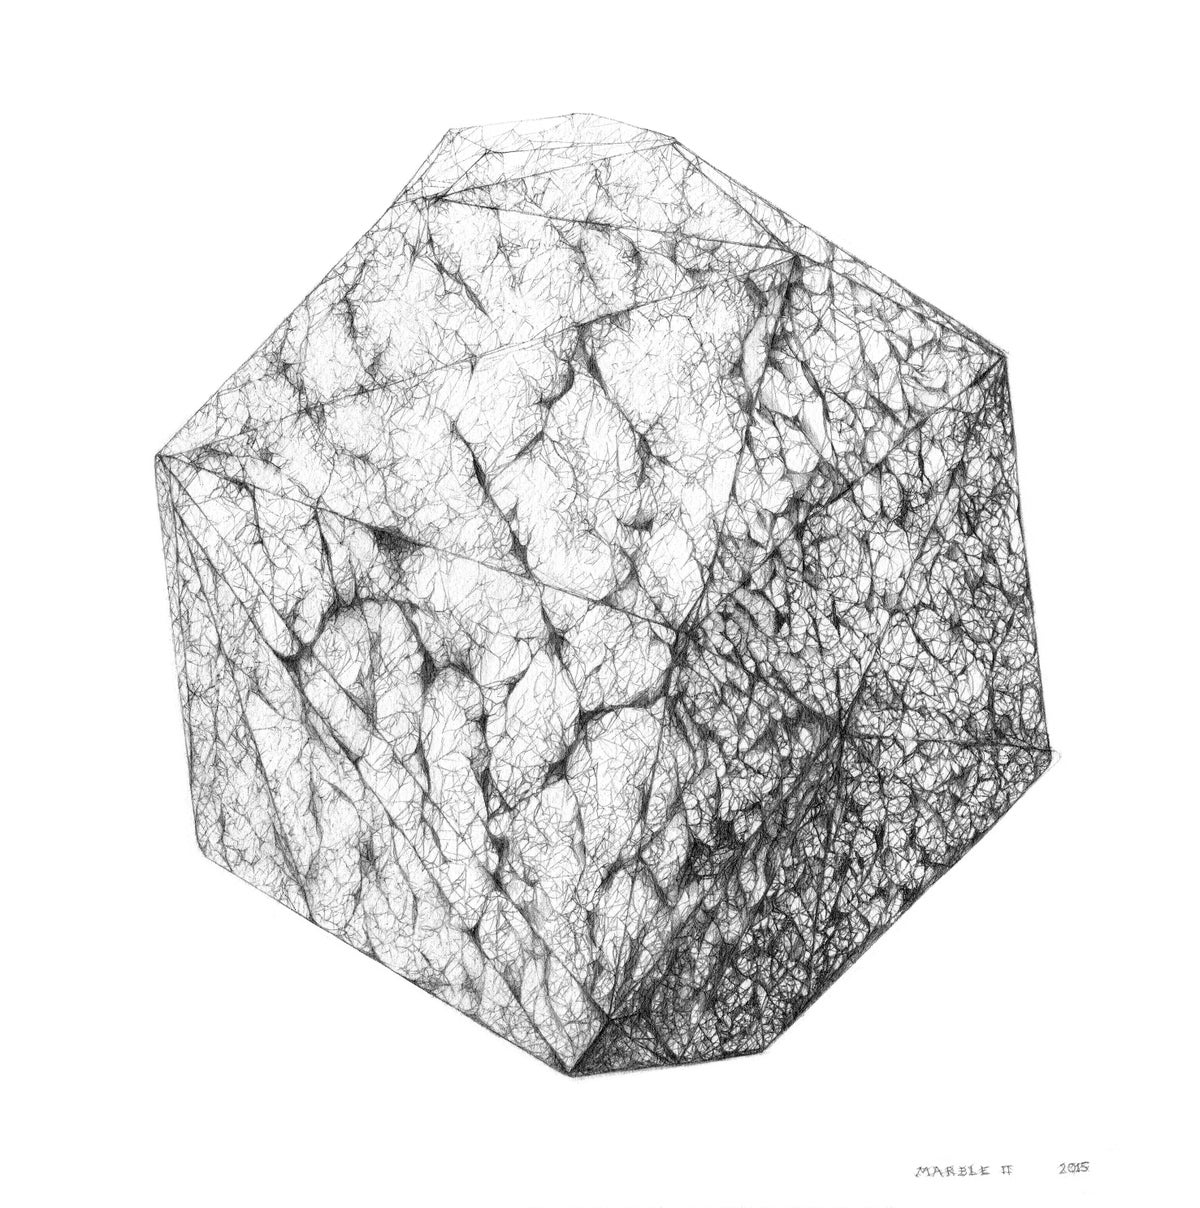 Image of Marble II